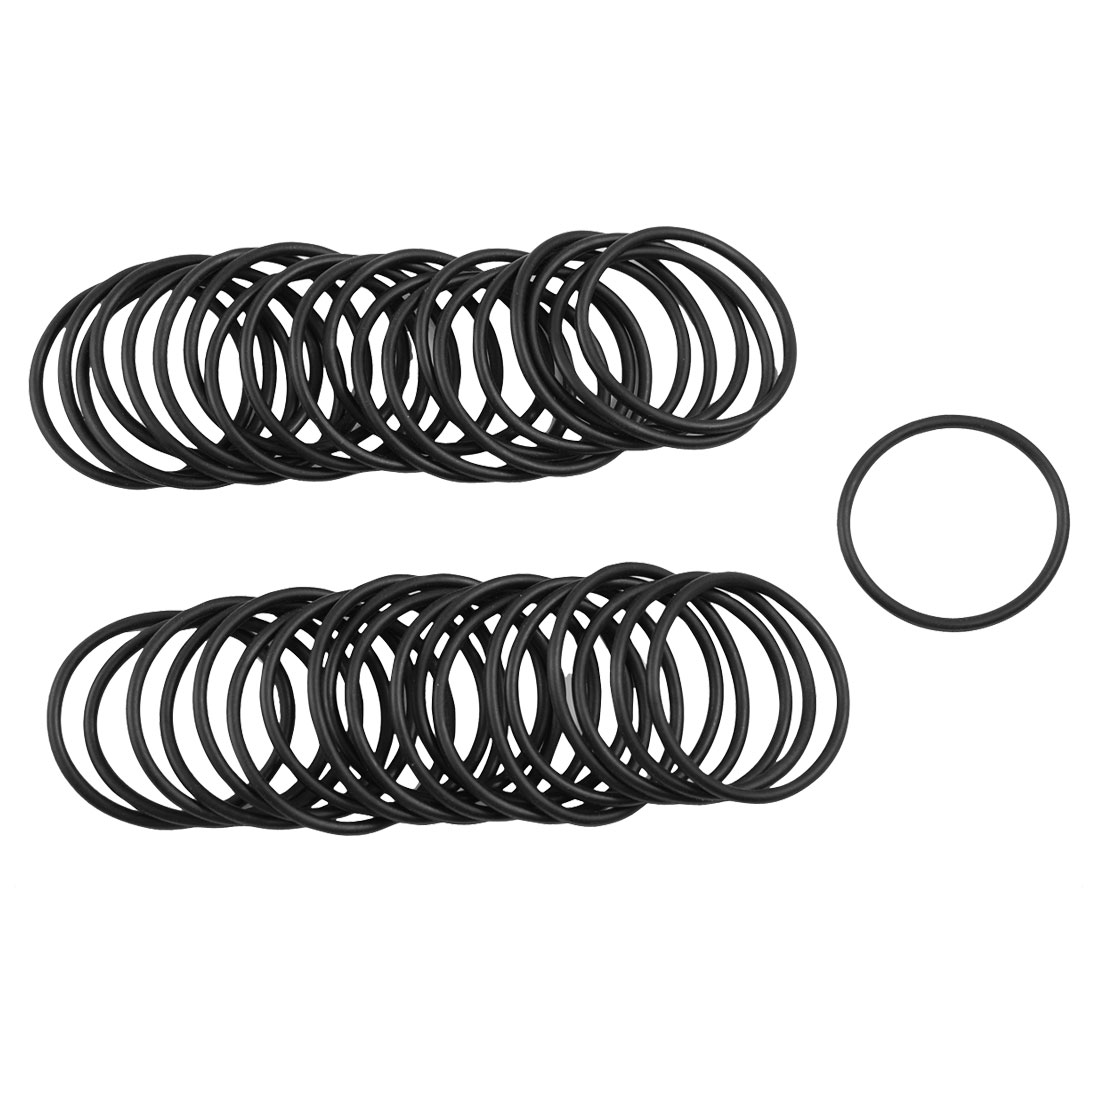 50 x Black 32mm OD 2mm Thickness Nitrile Rubber O-ring Oil Seal Gaskets